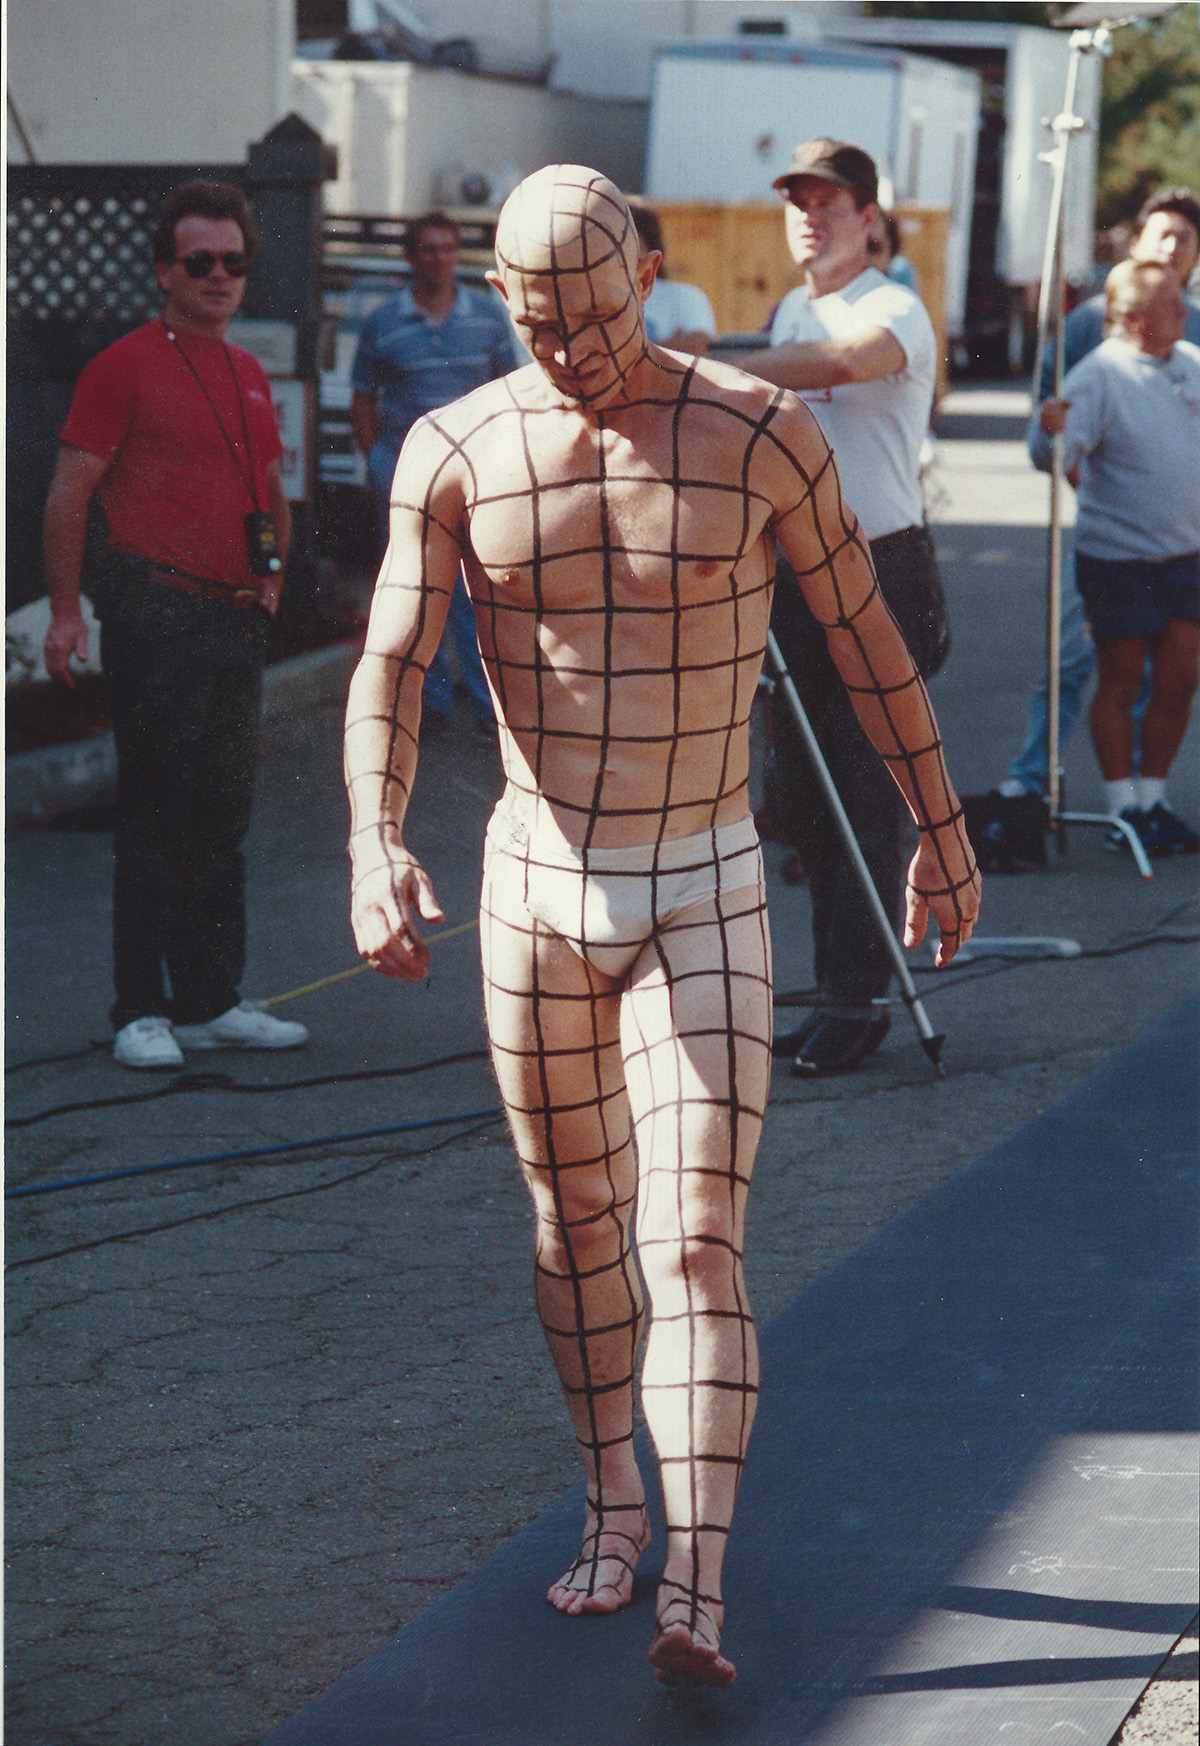 Robert Patrick with the grid painted on him.